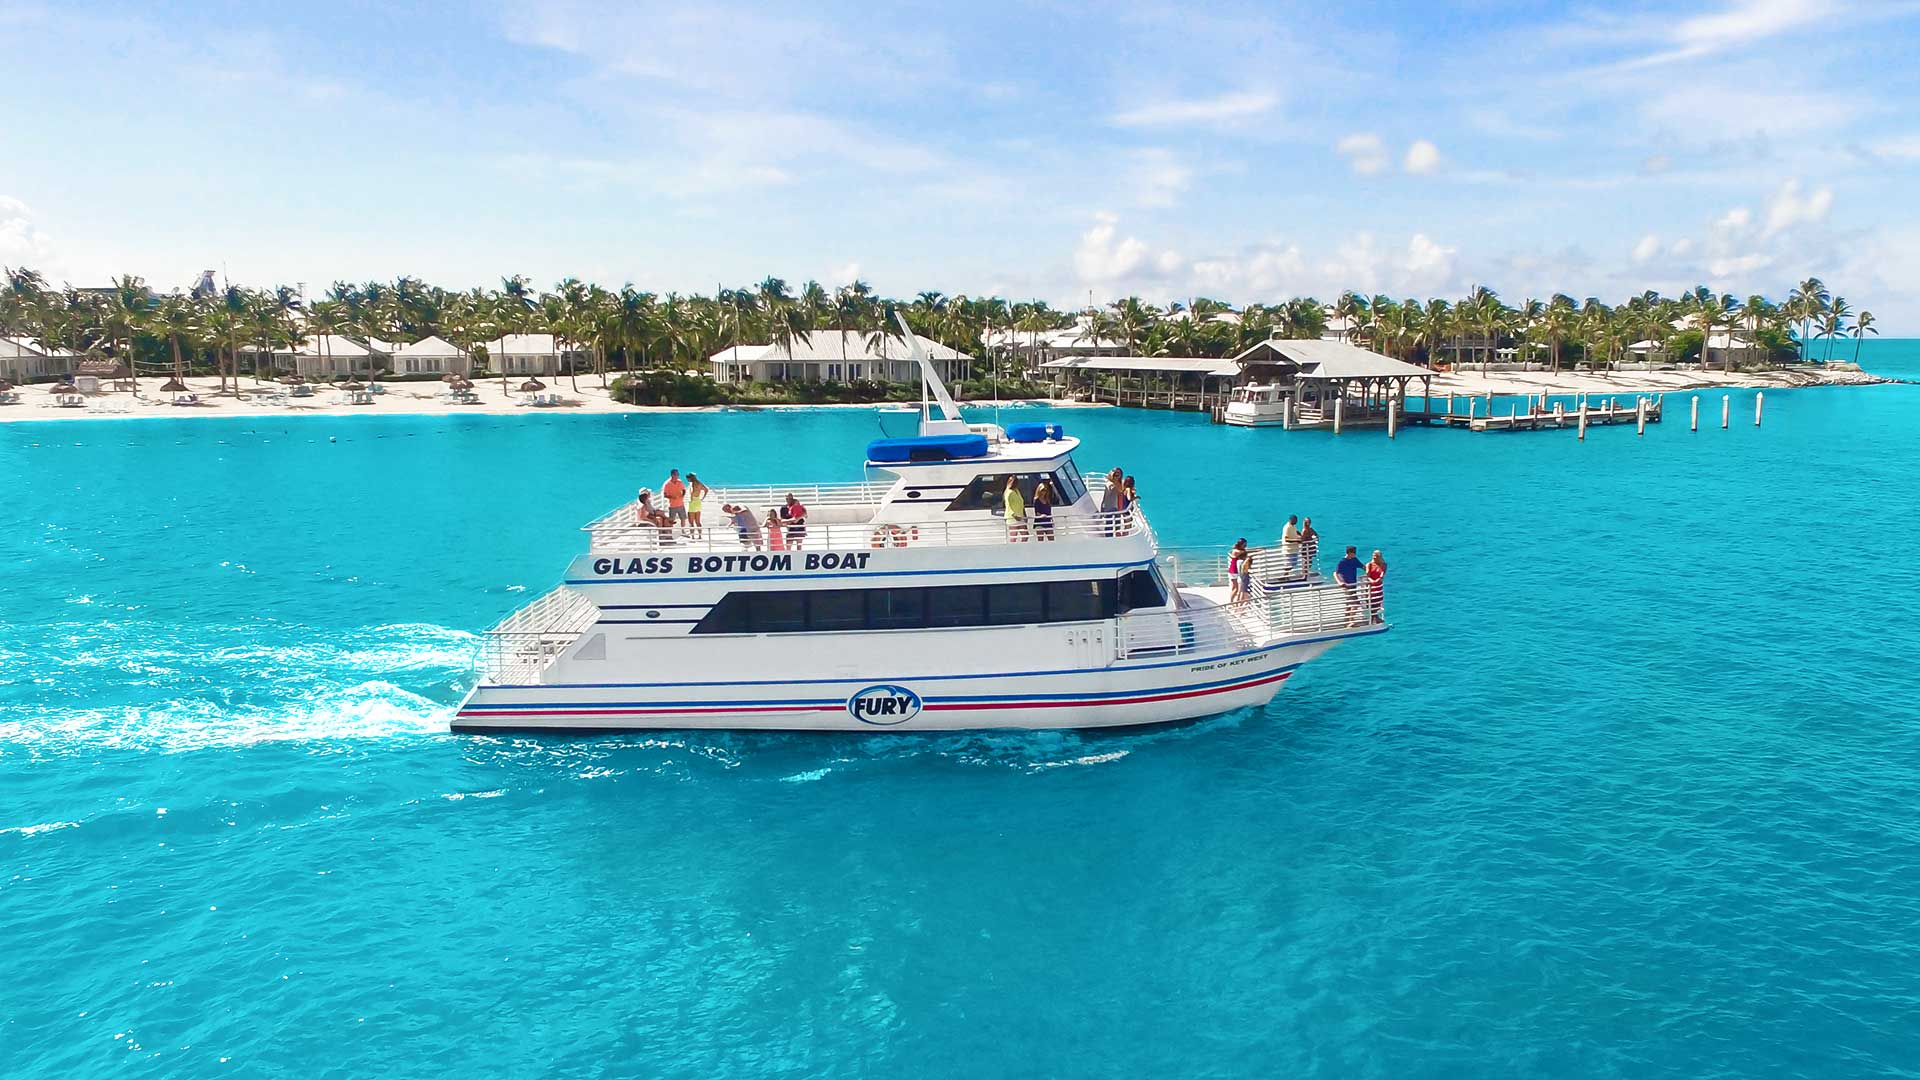 key west glass bottom boat outdoor tour